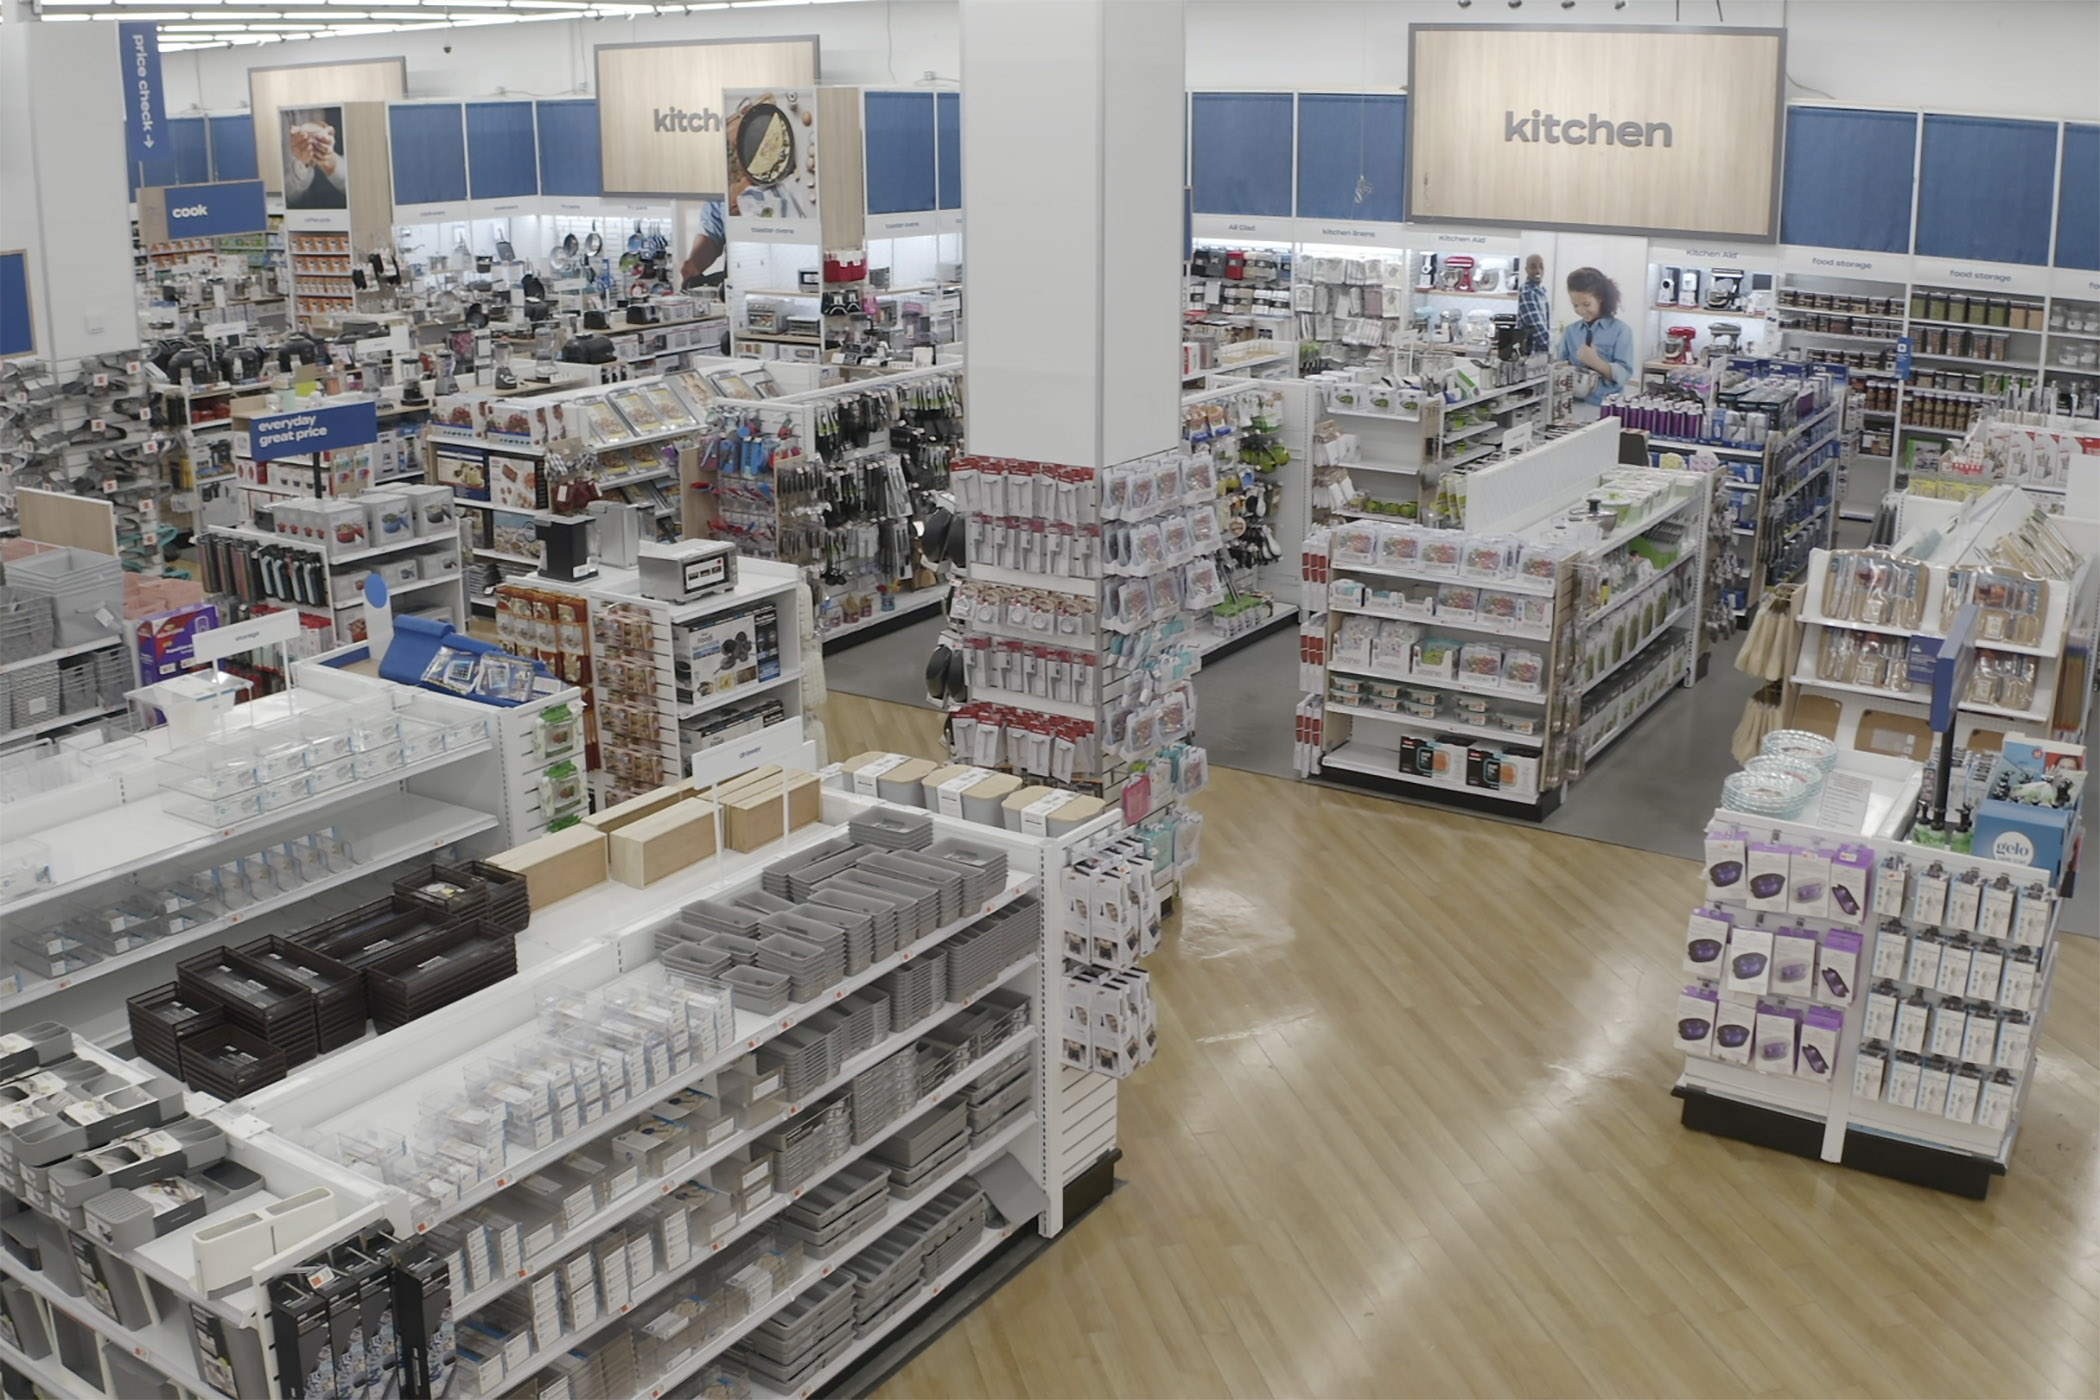 Bed Bath & Beyond has remodeled 10 stores in the Houston area and will begin rolling out the new design in other locations across the nation. (Bed Bath & Beyond)